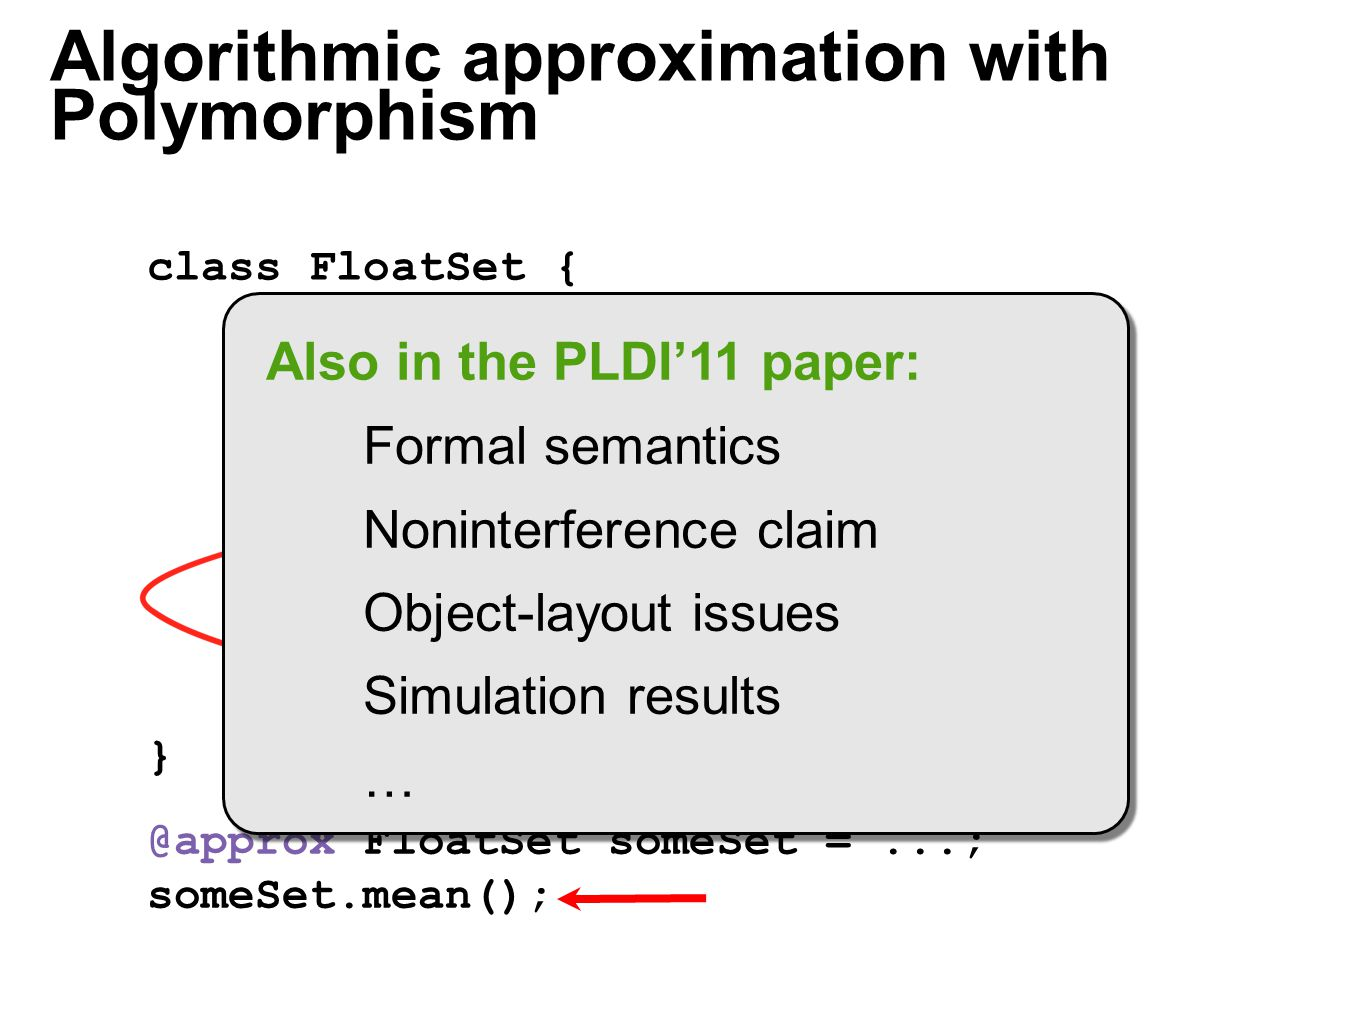 float mean() { calculate mean } float[] nums =...; class FloatSet { @context } @approx float mean_APPROX() { calculate mean of half } @approx FloatSet someSet =...; someSet.mean(); Algorithmic approximation with Polymorphism Also in the PLDI'11 paper: Formal semantics Noninterference claim Object-layout issues Simulation results …